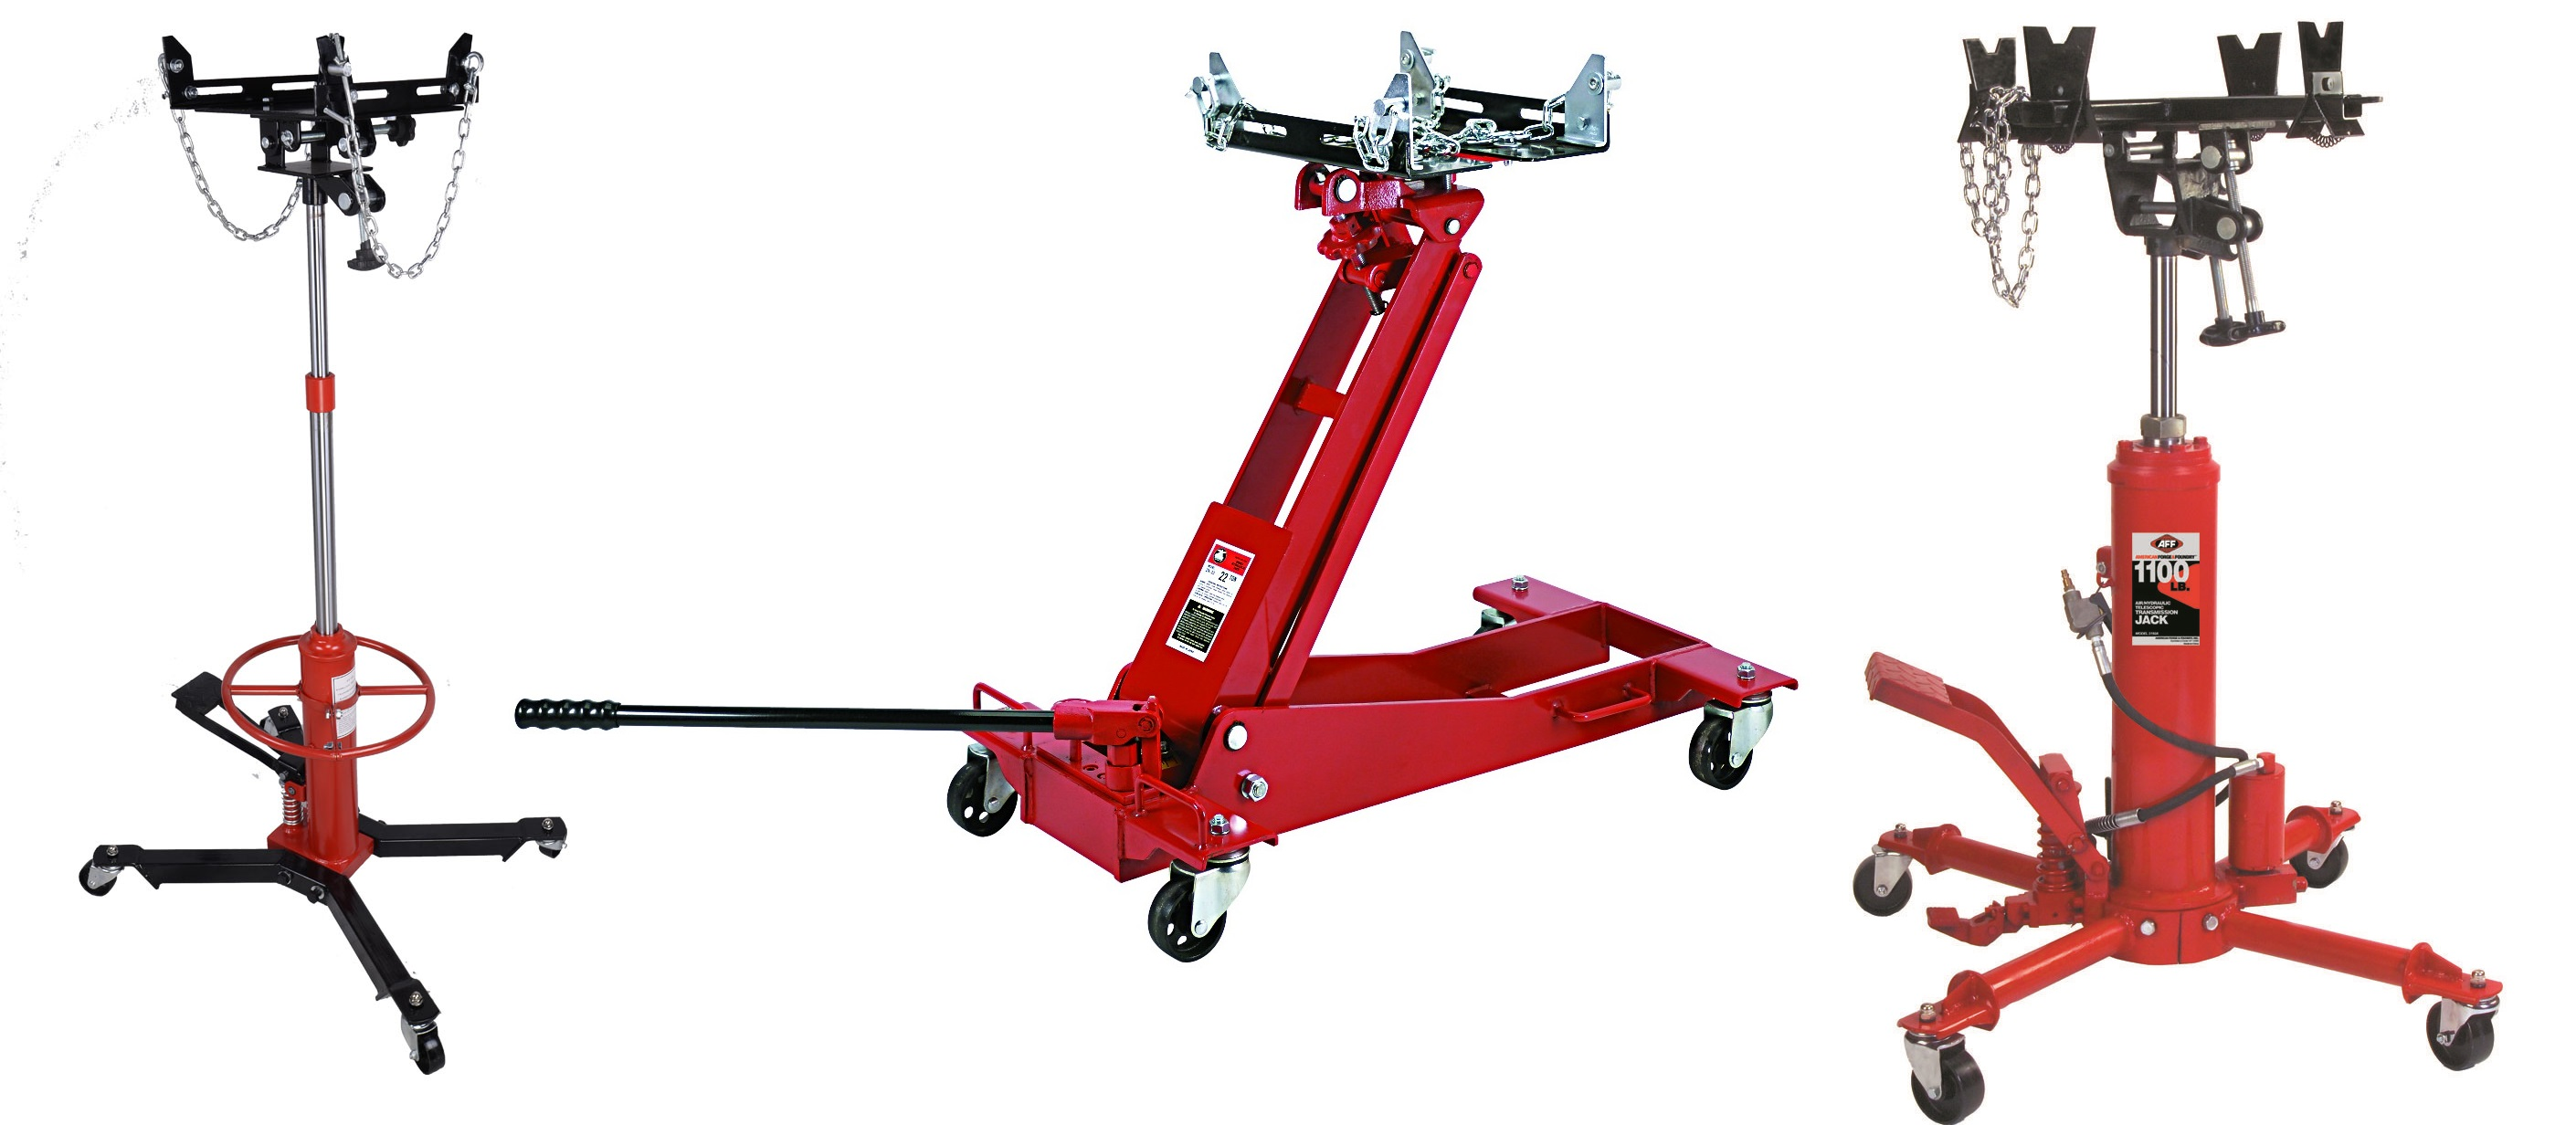 Transmission Jack Adapter Factors To Consider Before Purchase